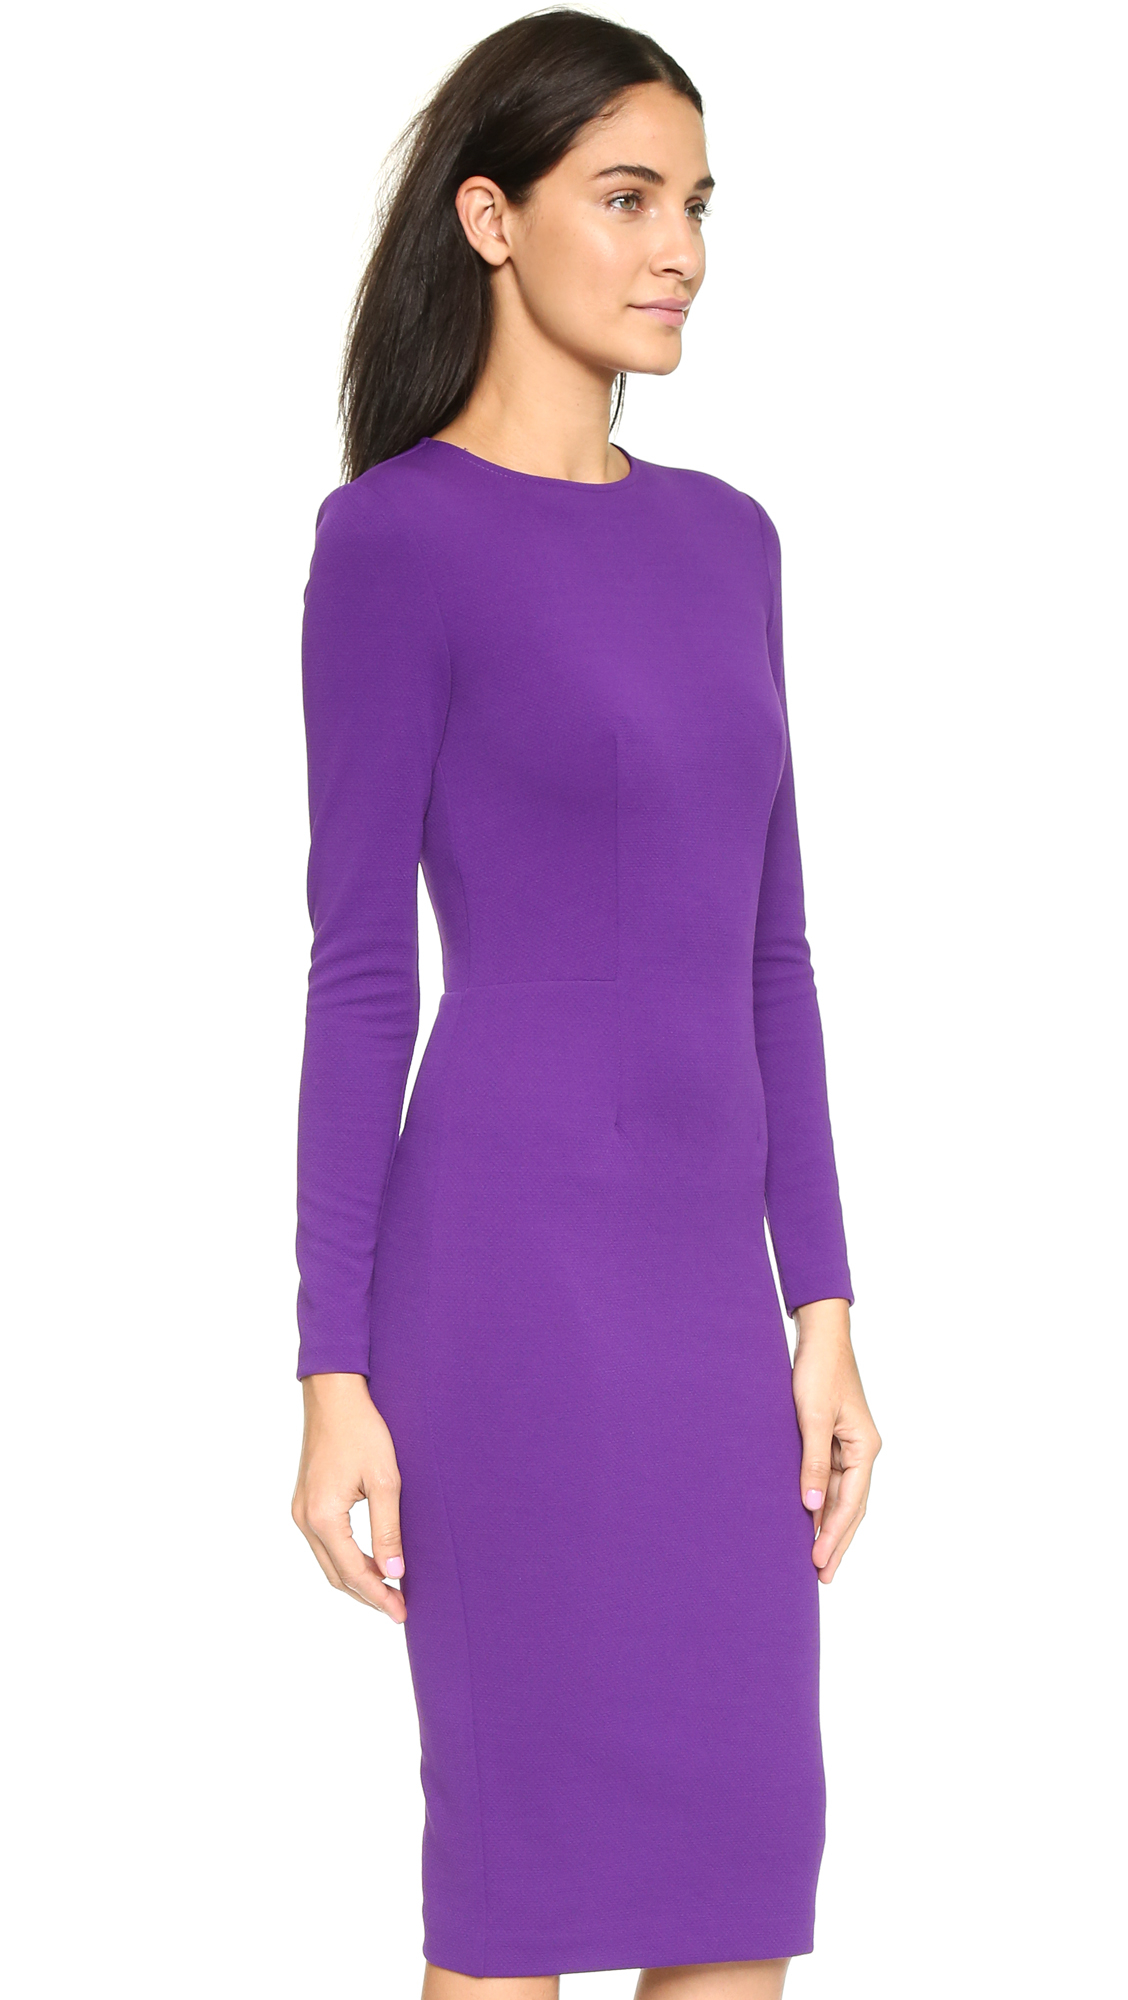 f0e0ec58f28c 5th   Mercer Long Sleeve Dress - Purple in Purple - Lyst